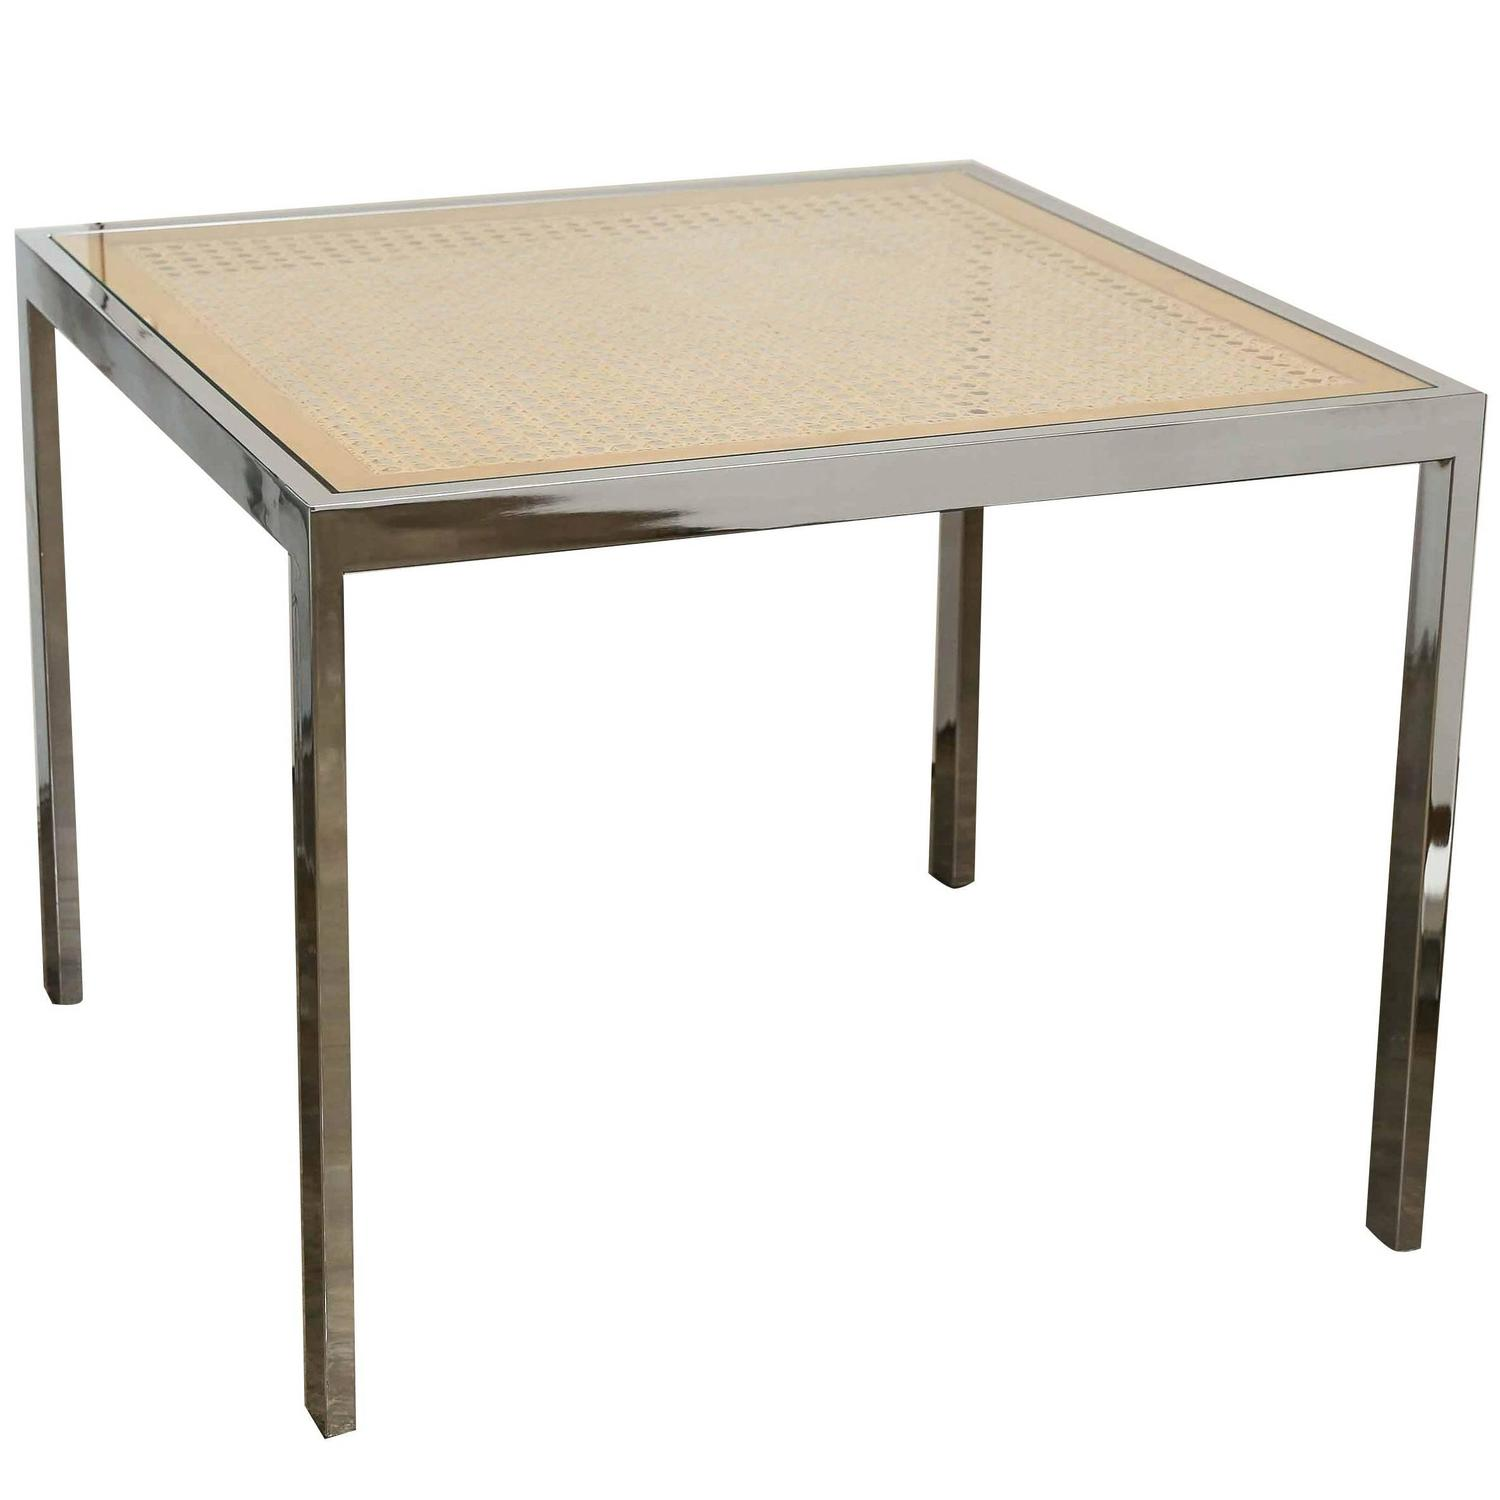 Antique and Vintage Game Tables - 938 For Sale at 1stdibs